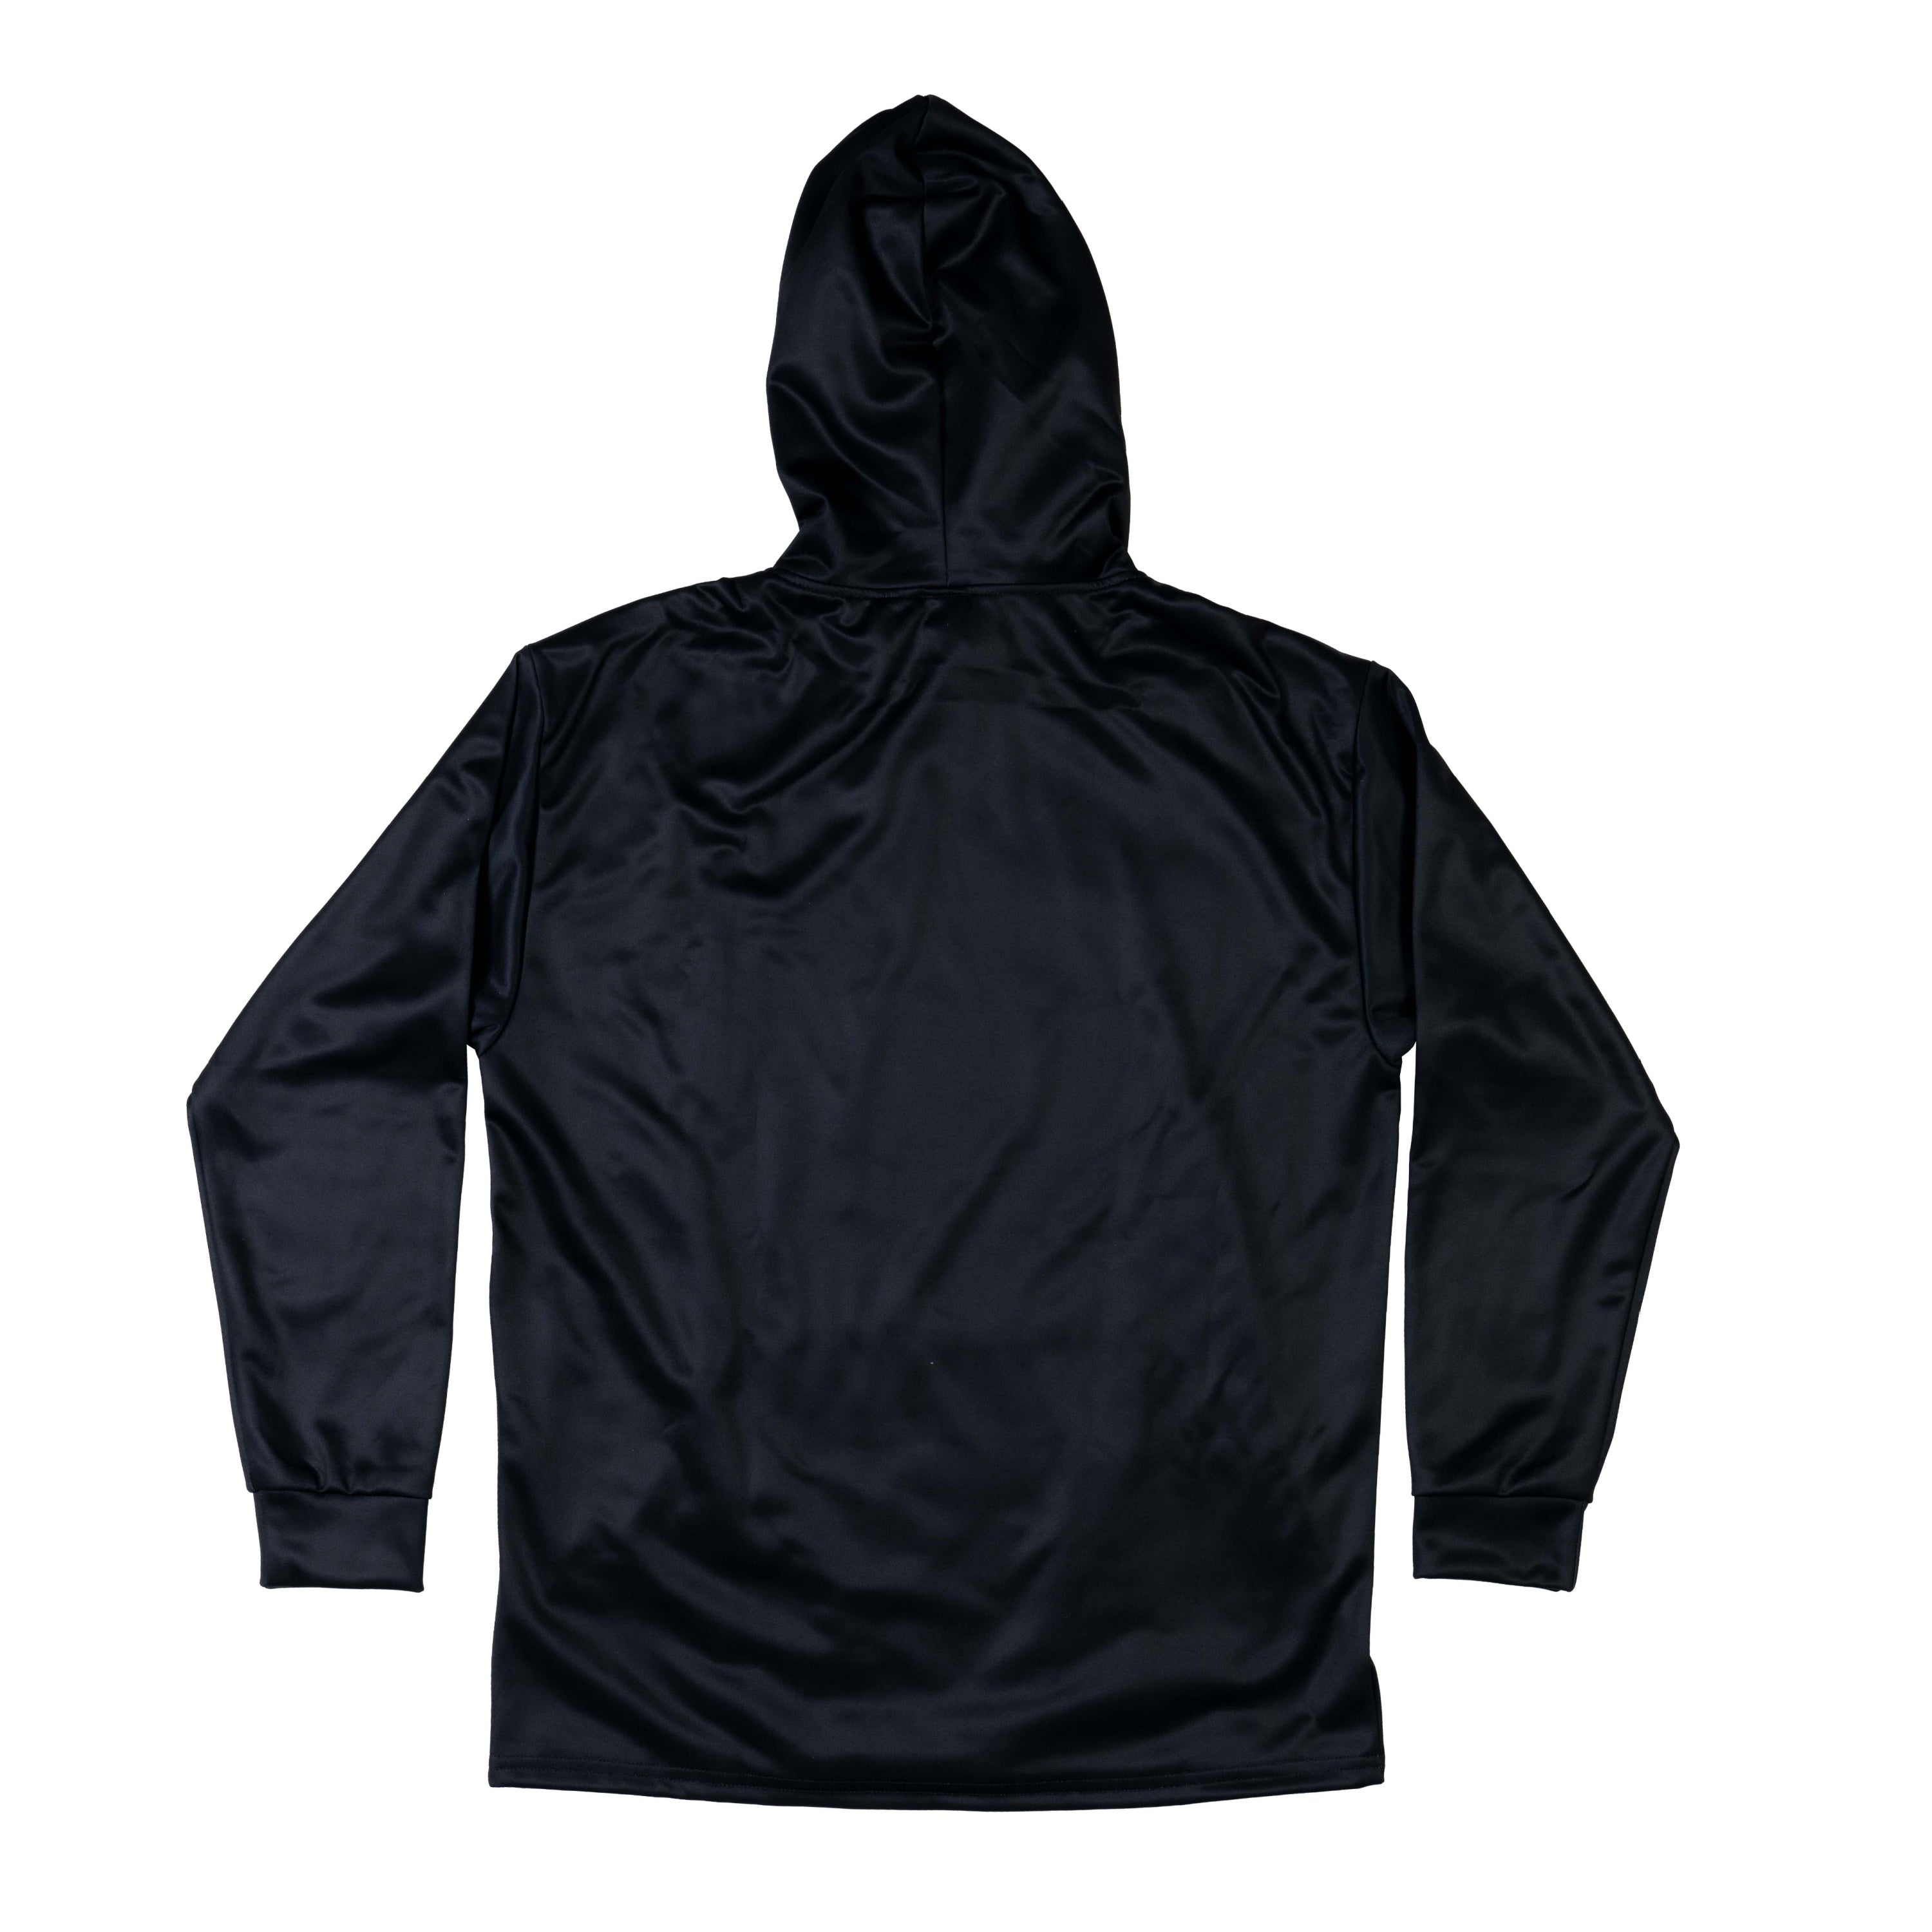 FREQ 01: Connected Hoodie